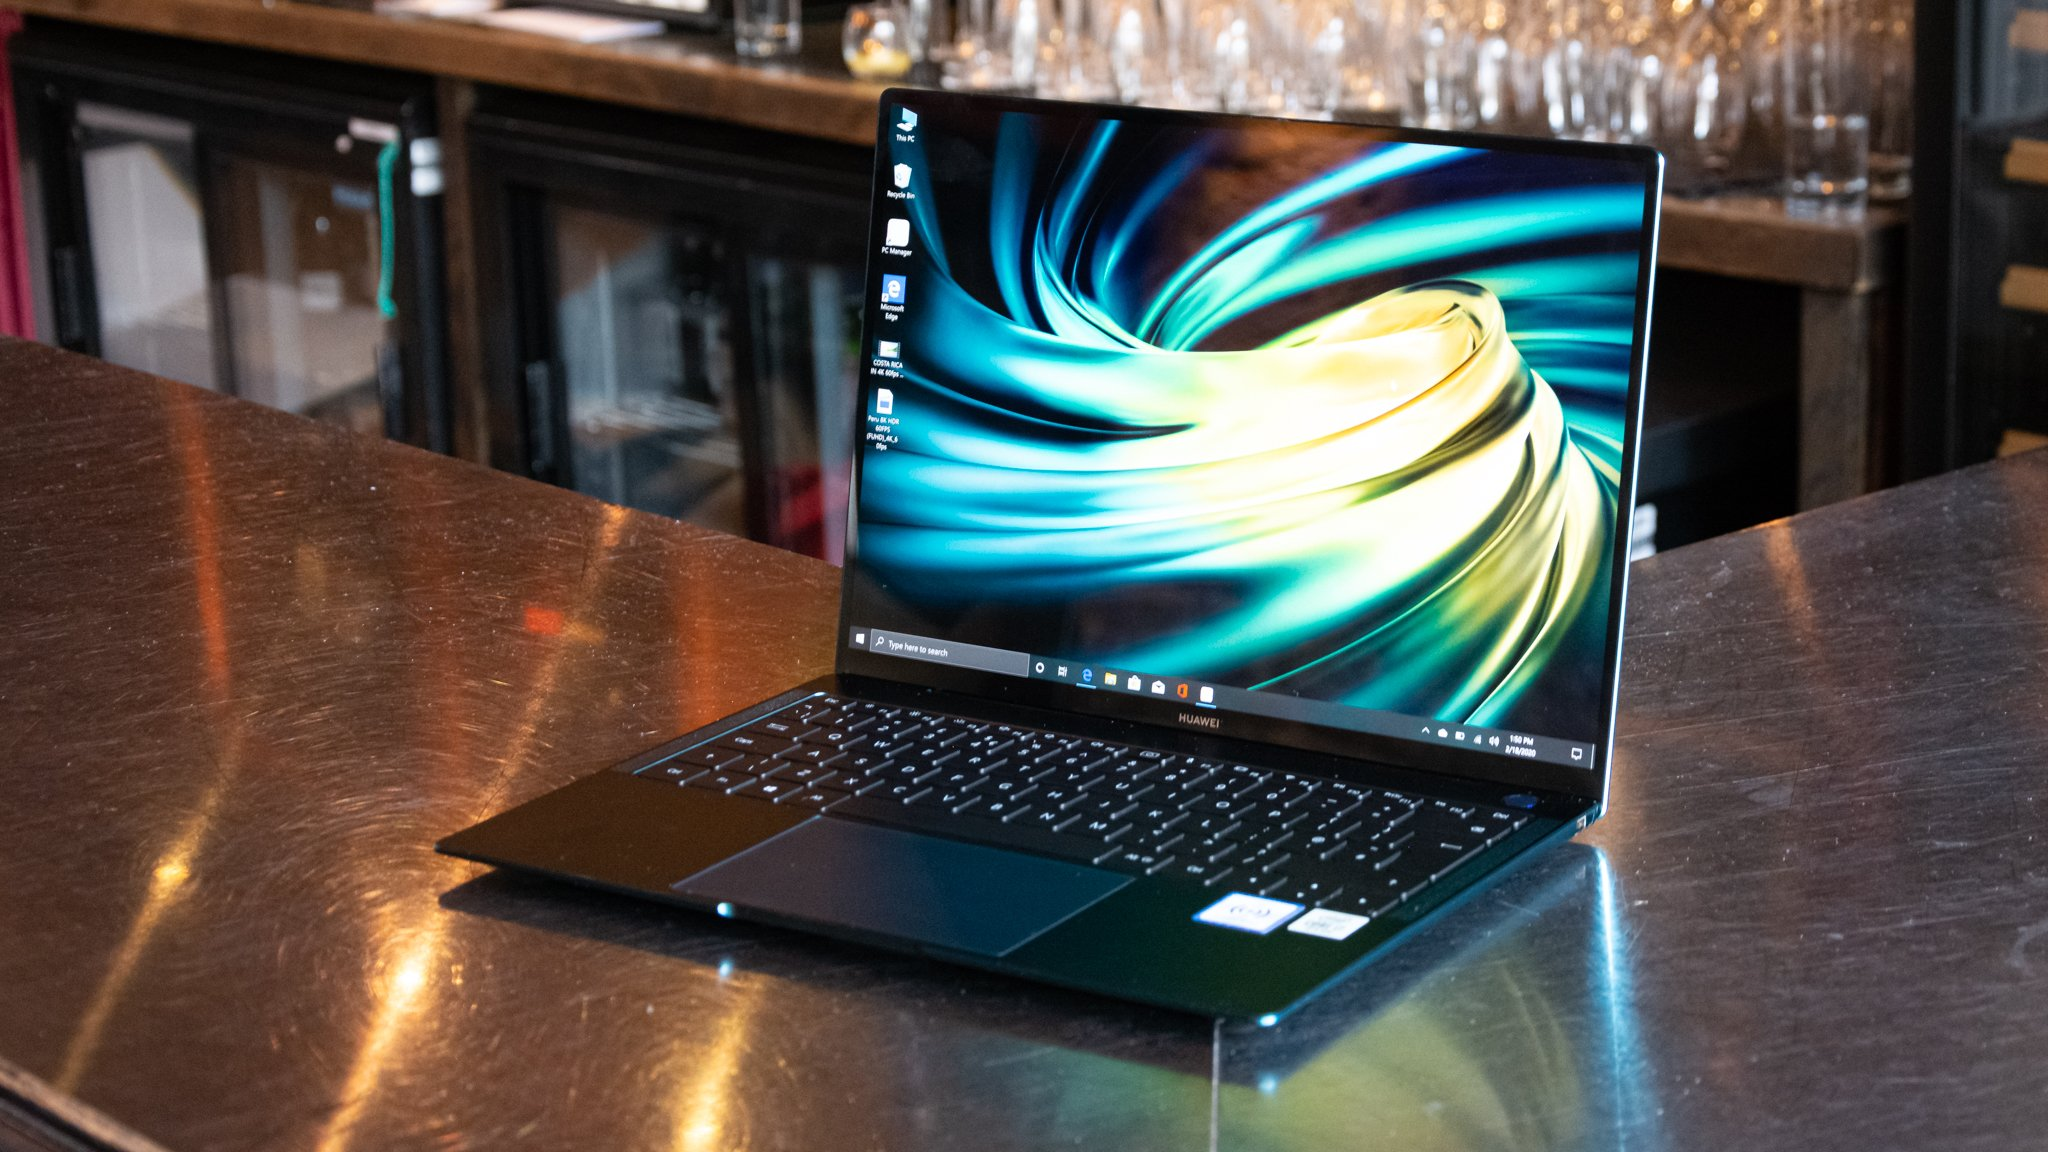 Huawei MateBook X Pro (2020) review: A mild update to a mighty fine laptop